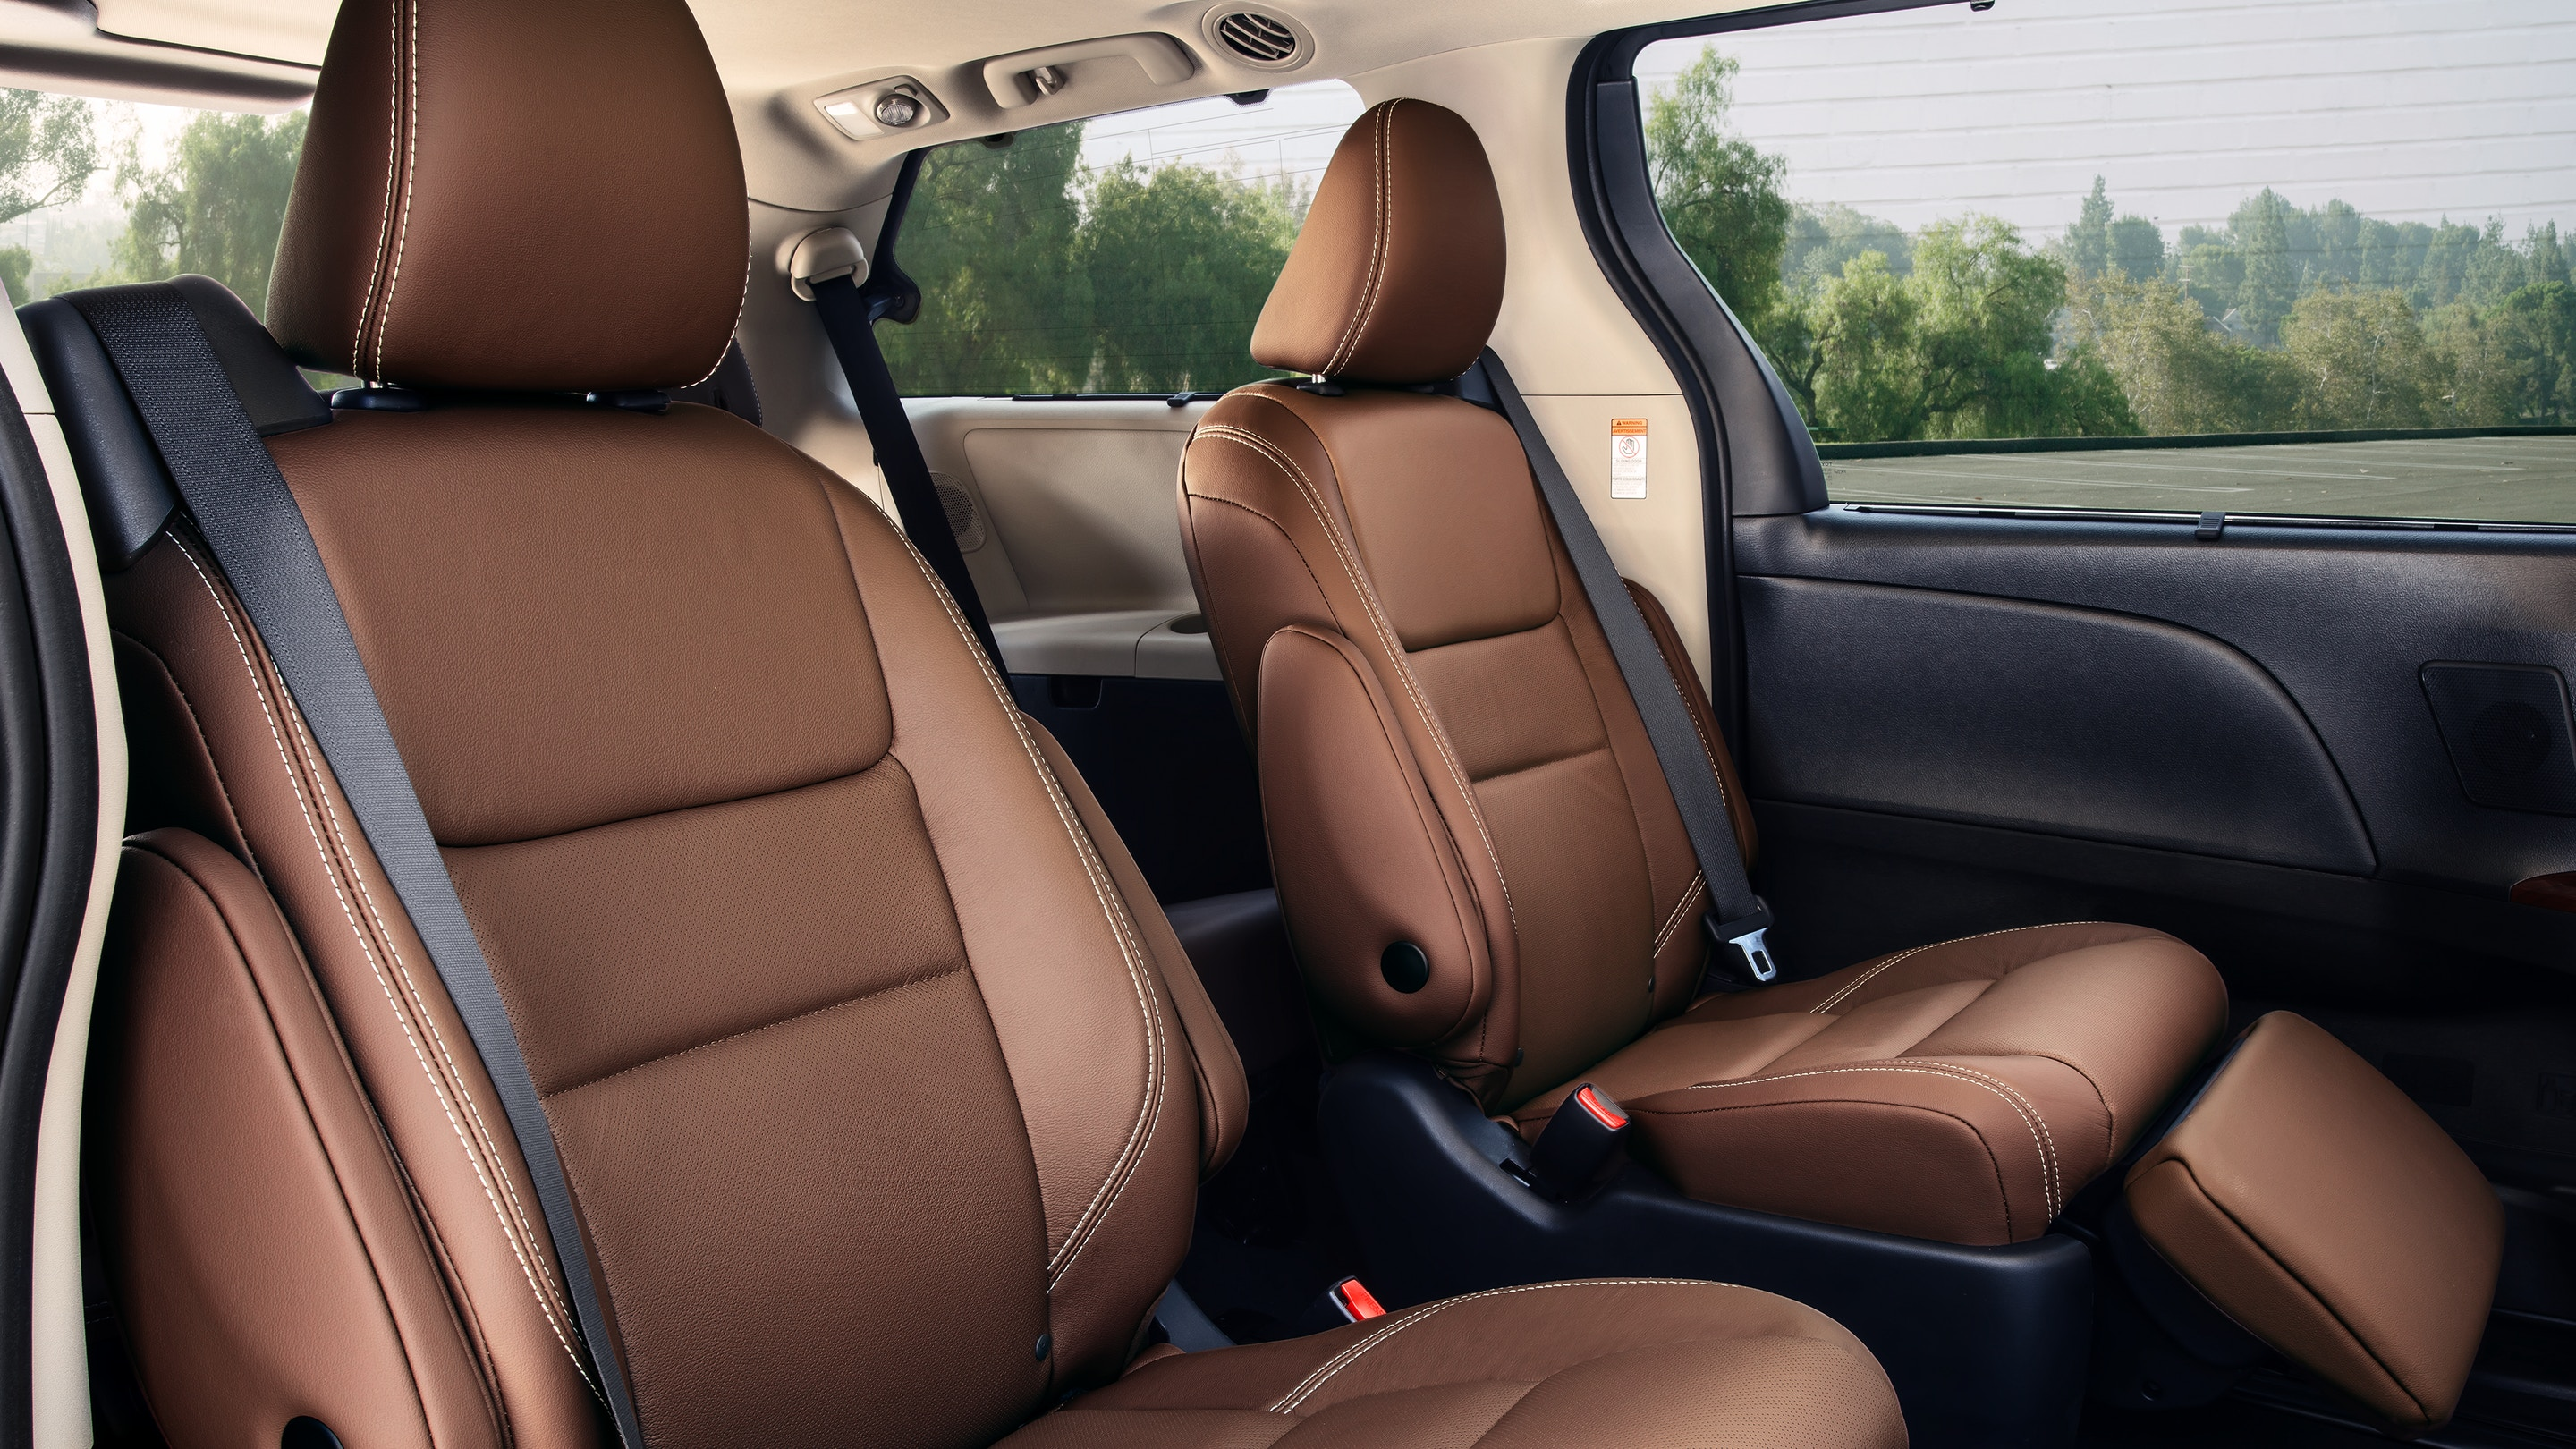 Upscale Seats in the 2020 Toyota Sienna